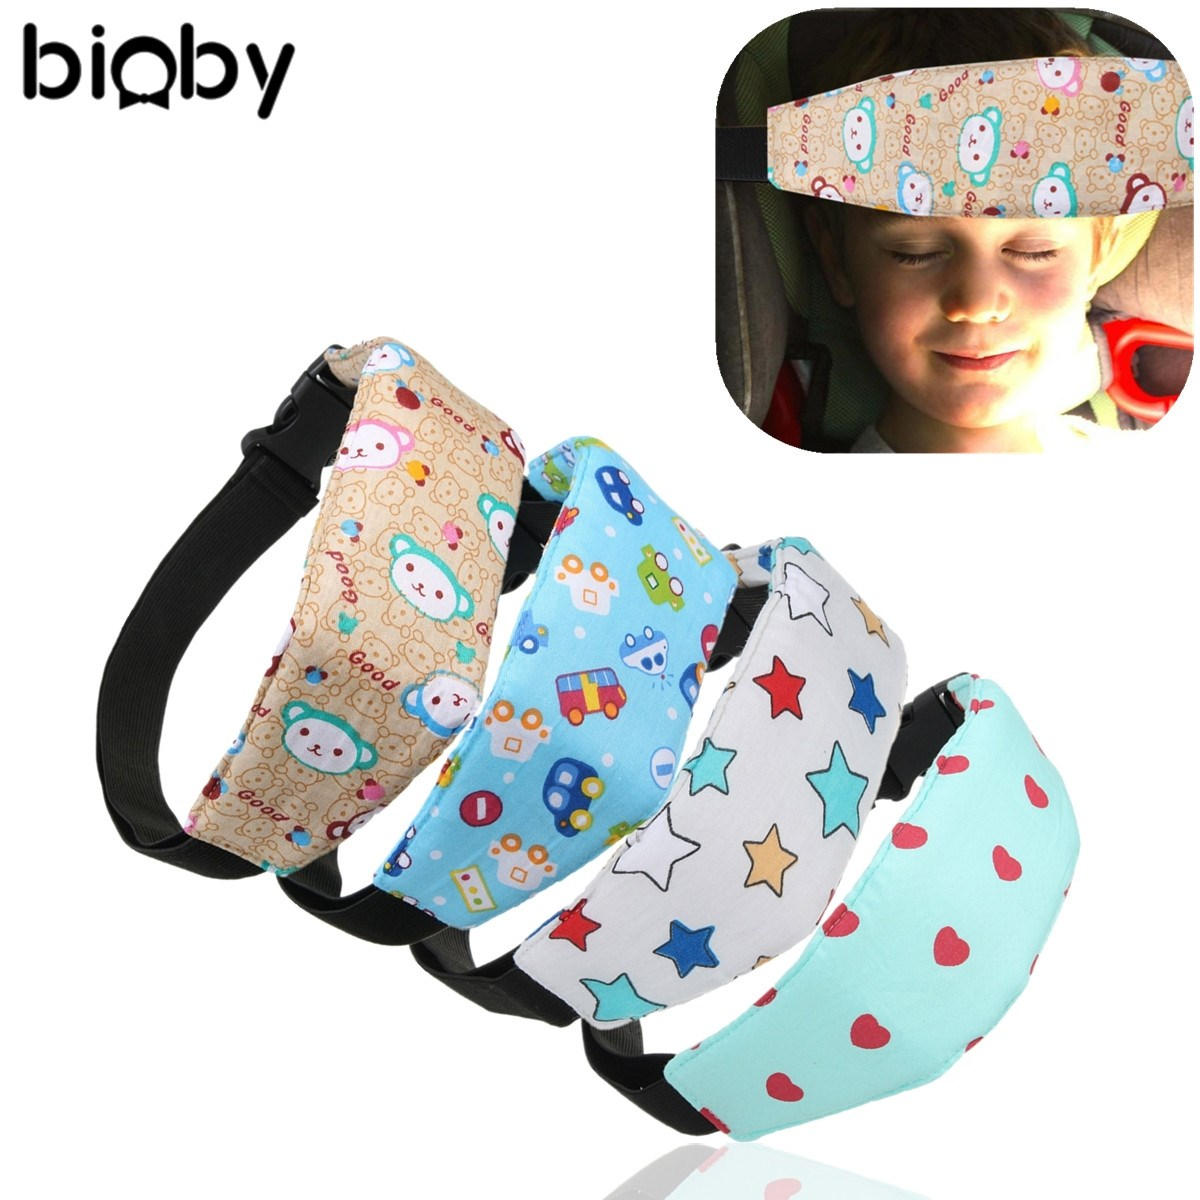 Baby Infant Auto Car Seat Support Belt Safety Sleep Aid Head Holder ...